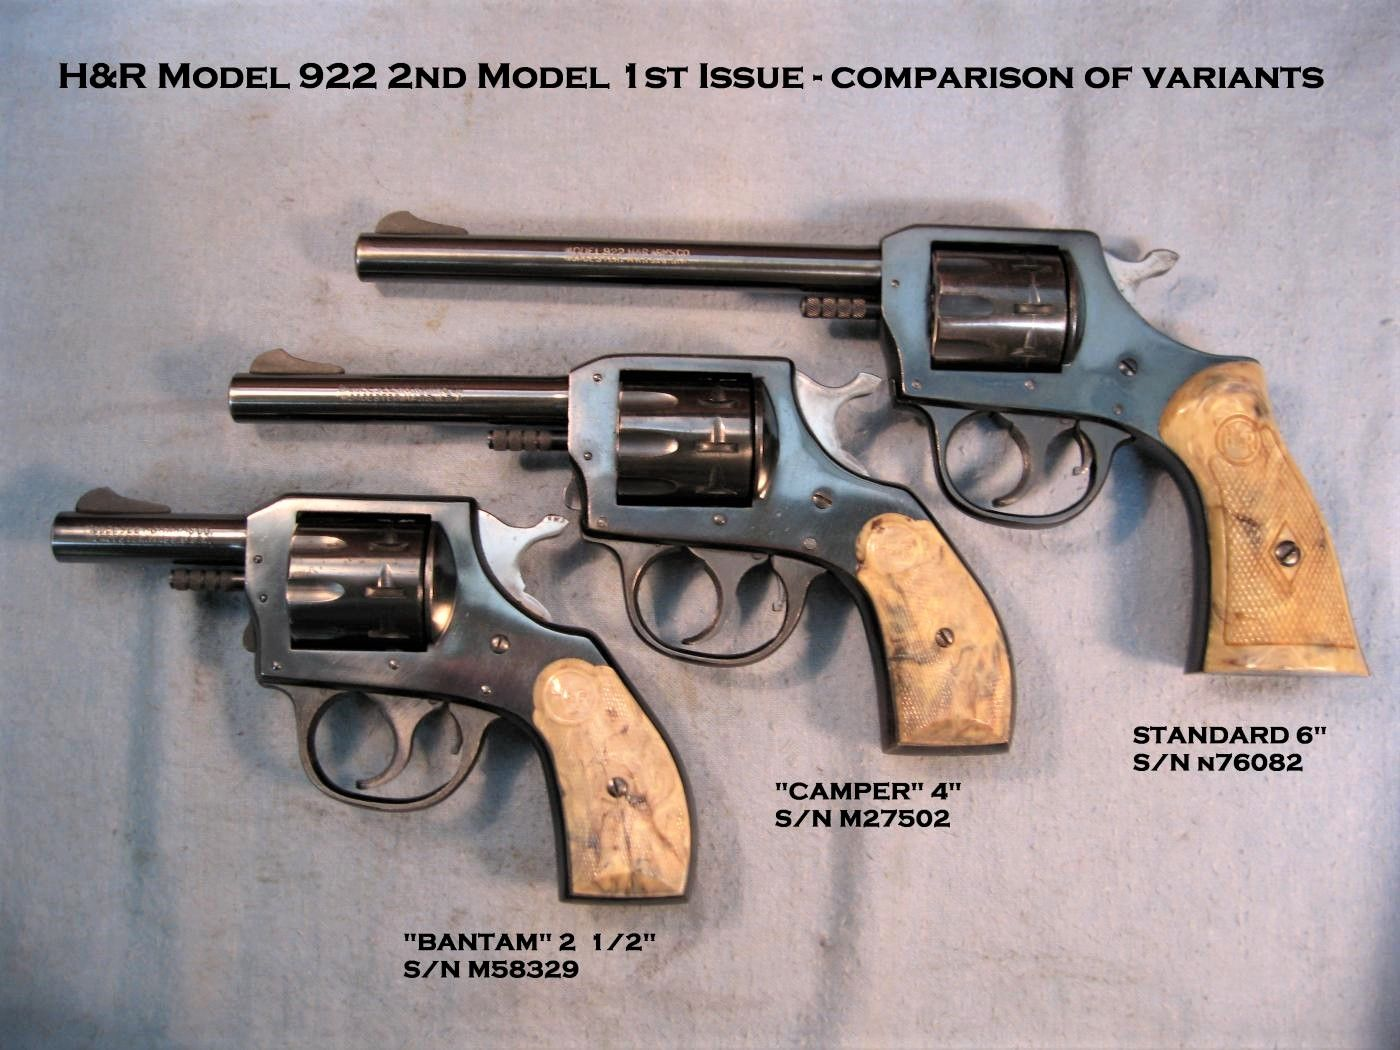 H&R 922 - 9-shot .22 revolver 1st issue variants. Pop-out Cylinder to  Reload.